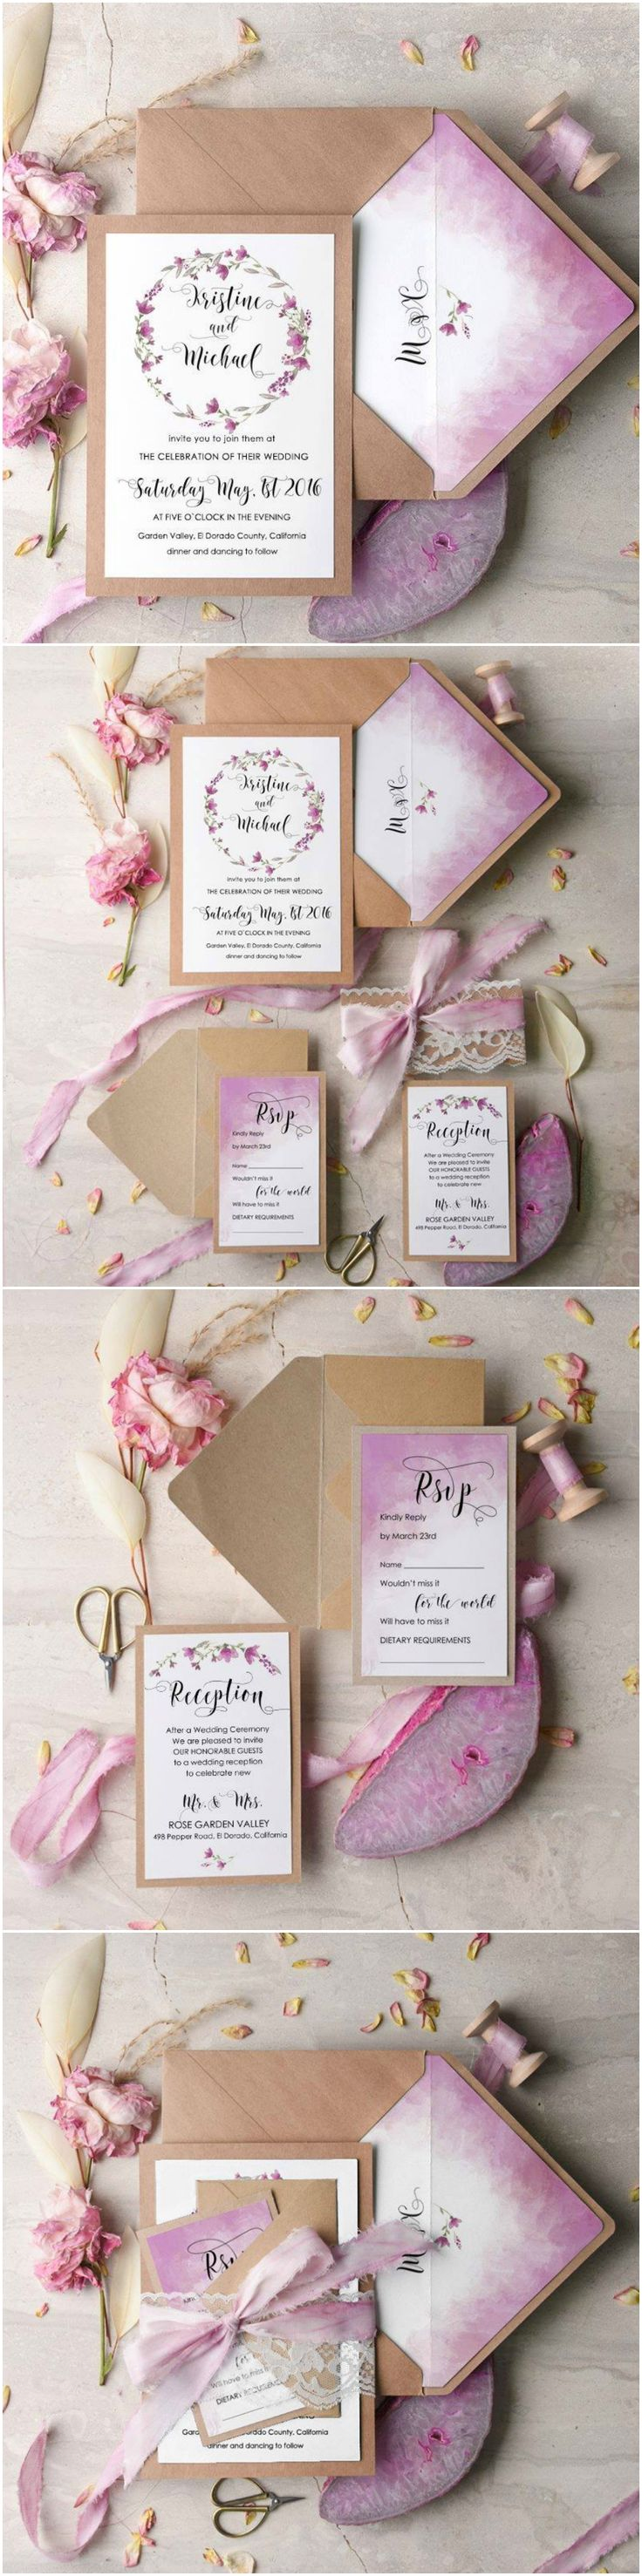 Ombre Watercolor Wedding Invitation with real lace